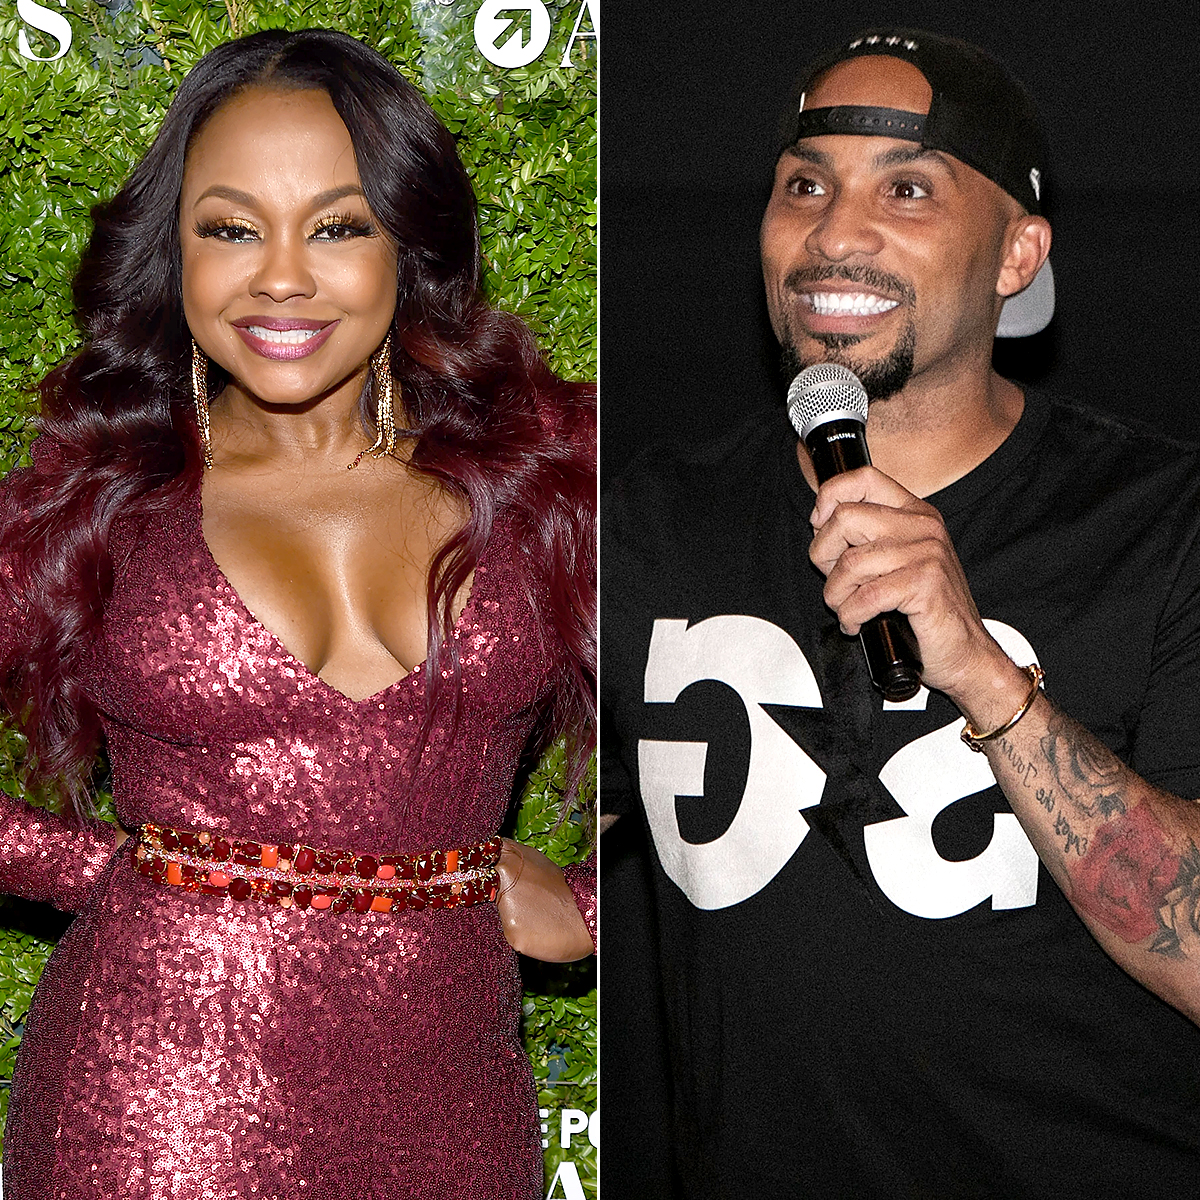 Phaedra Parks Is Dating Tone Kapone After Apollo Nida Divorce